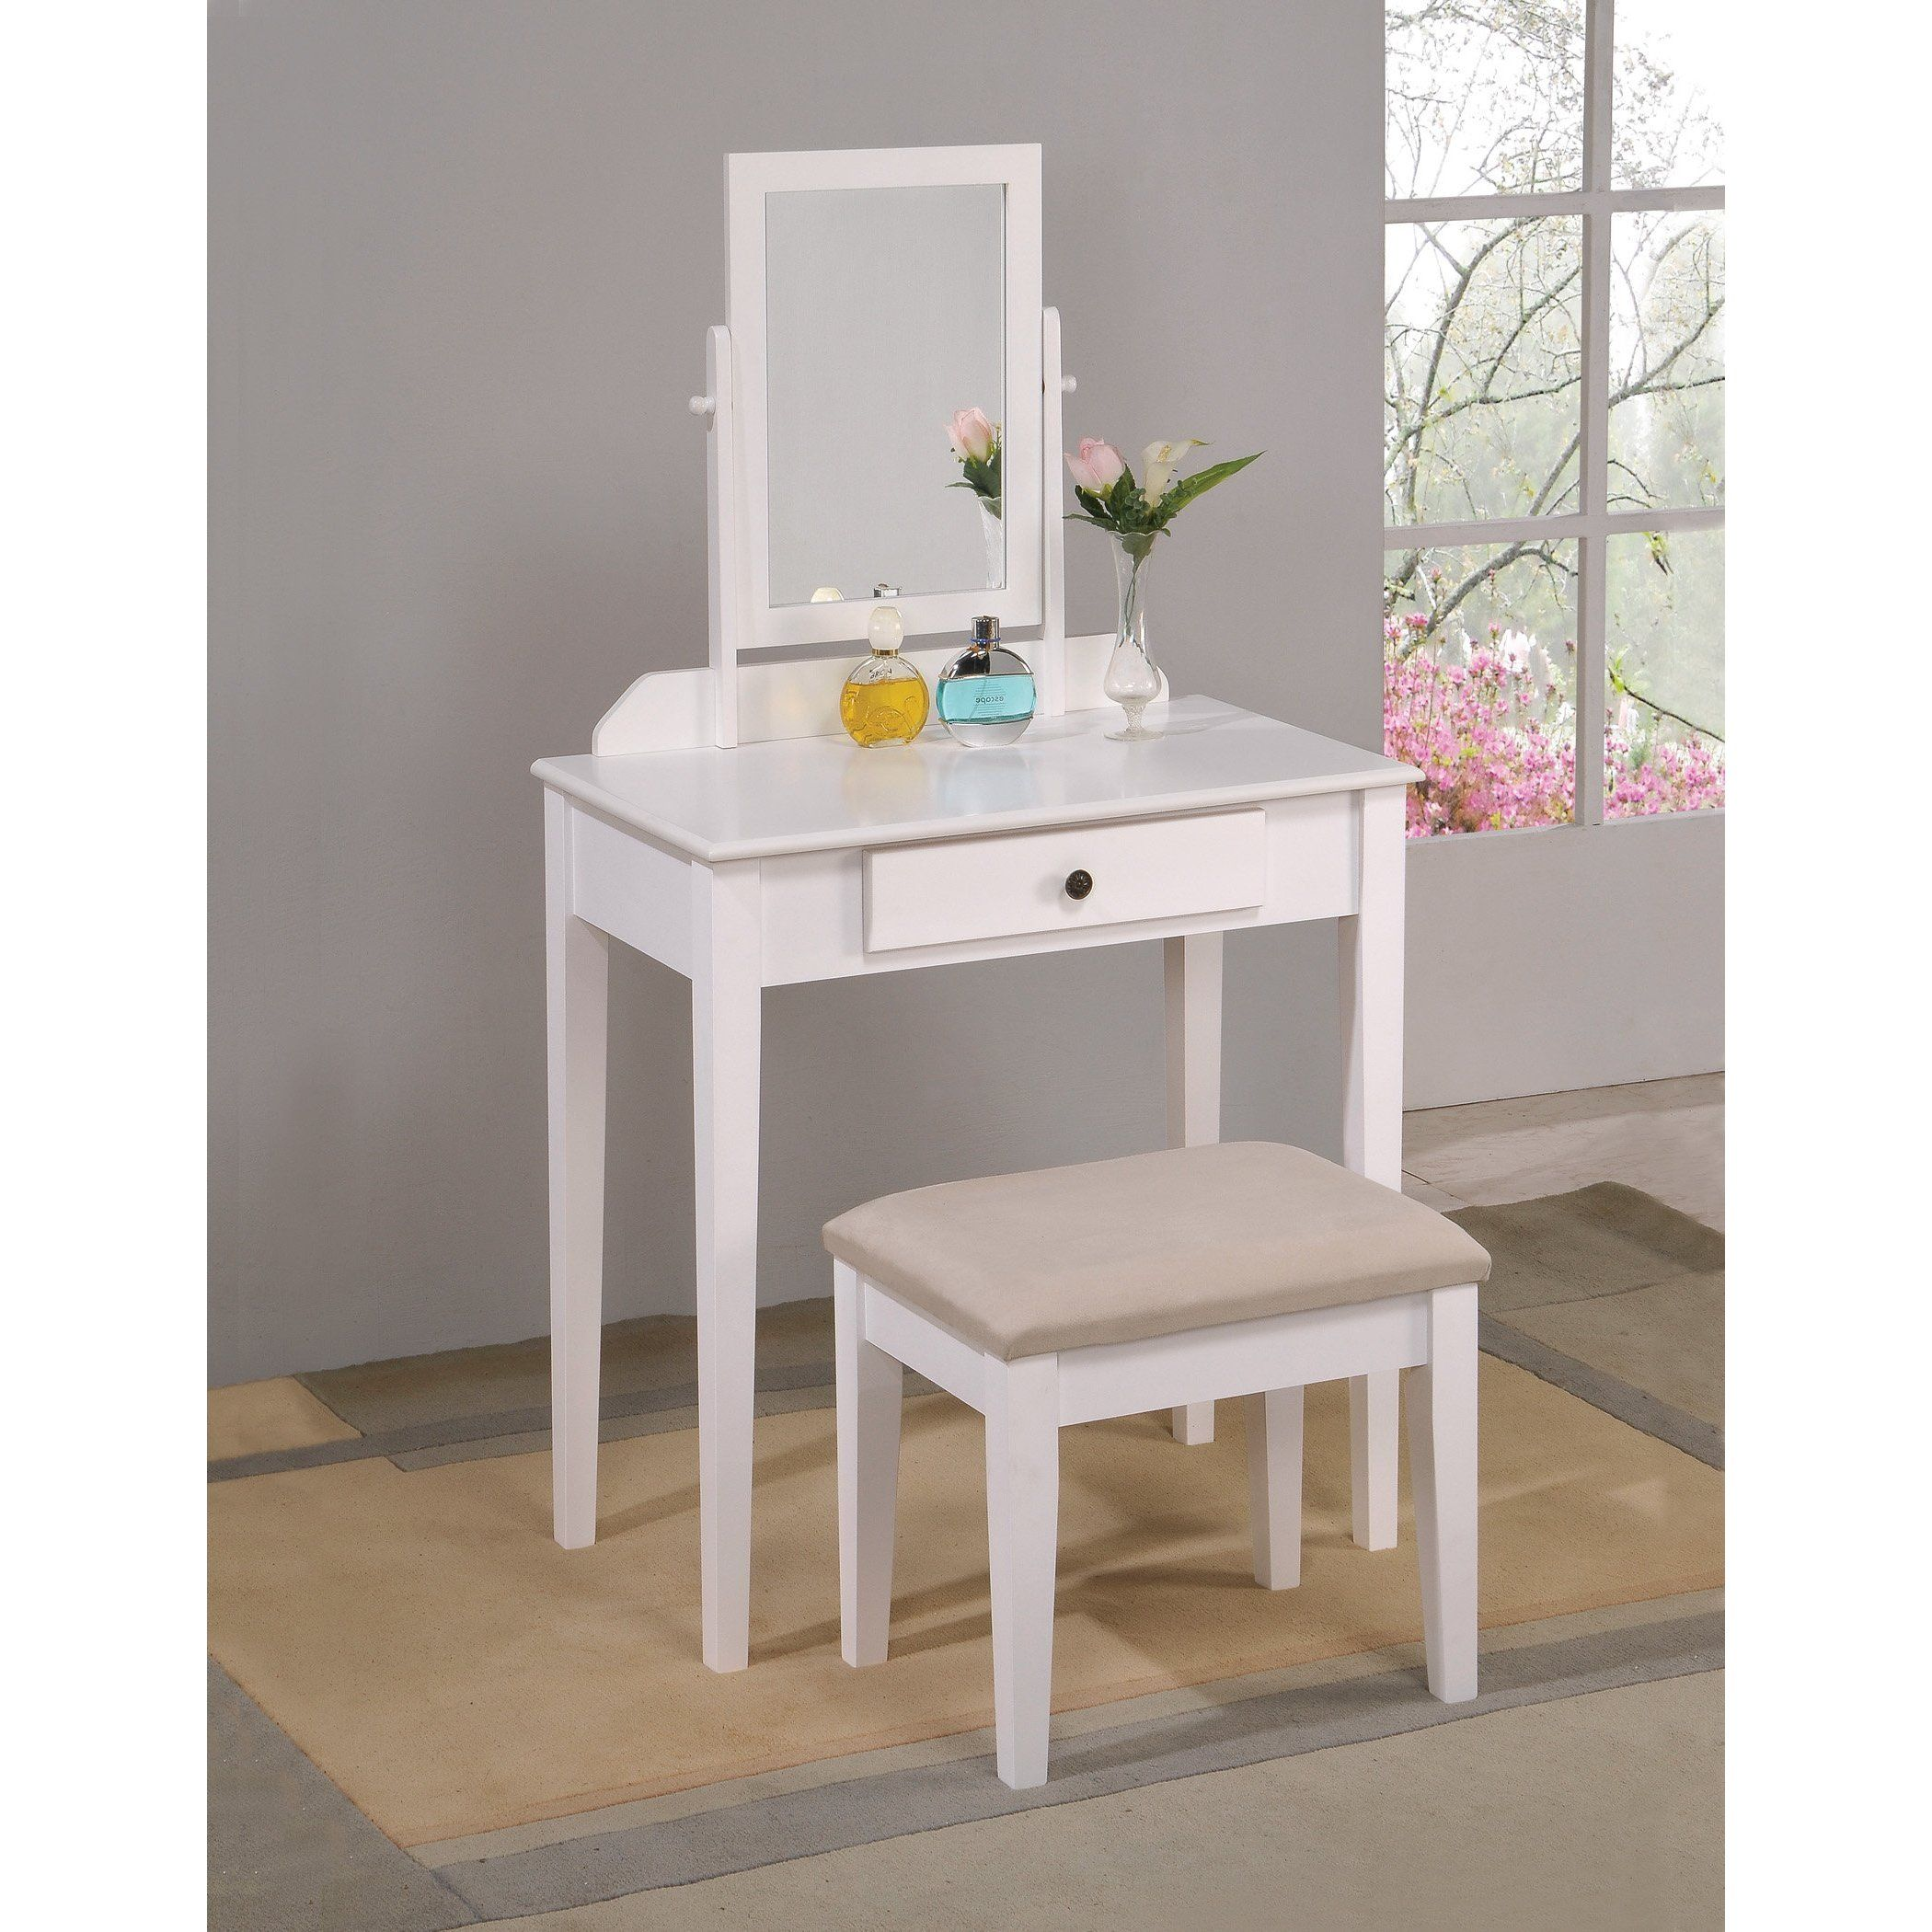 White bedroom vanity table with tilt mirror u cushioned bench